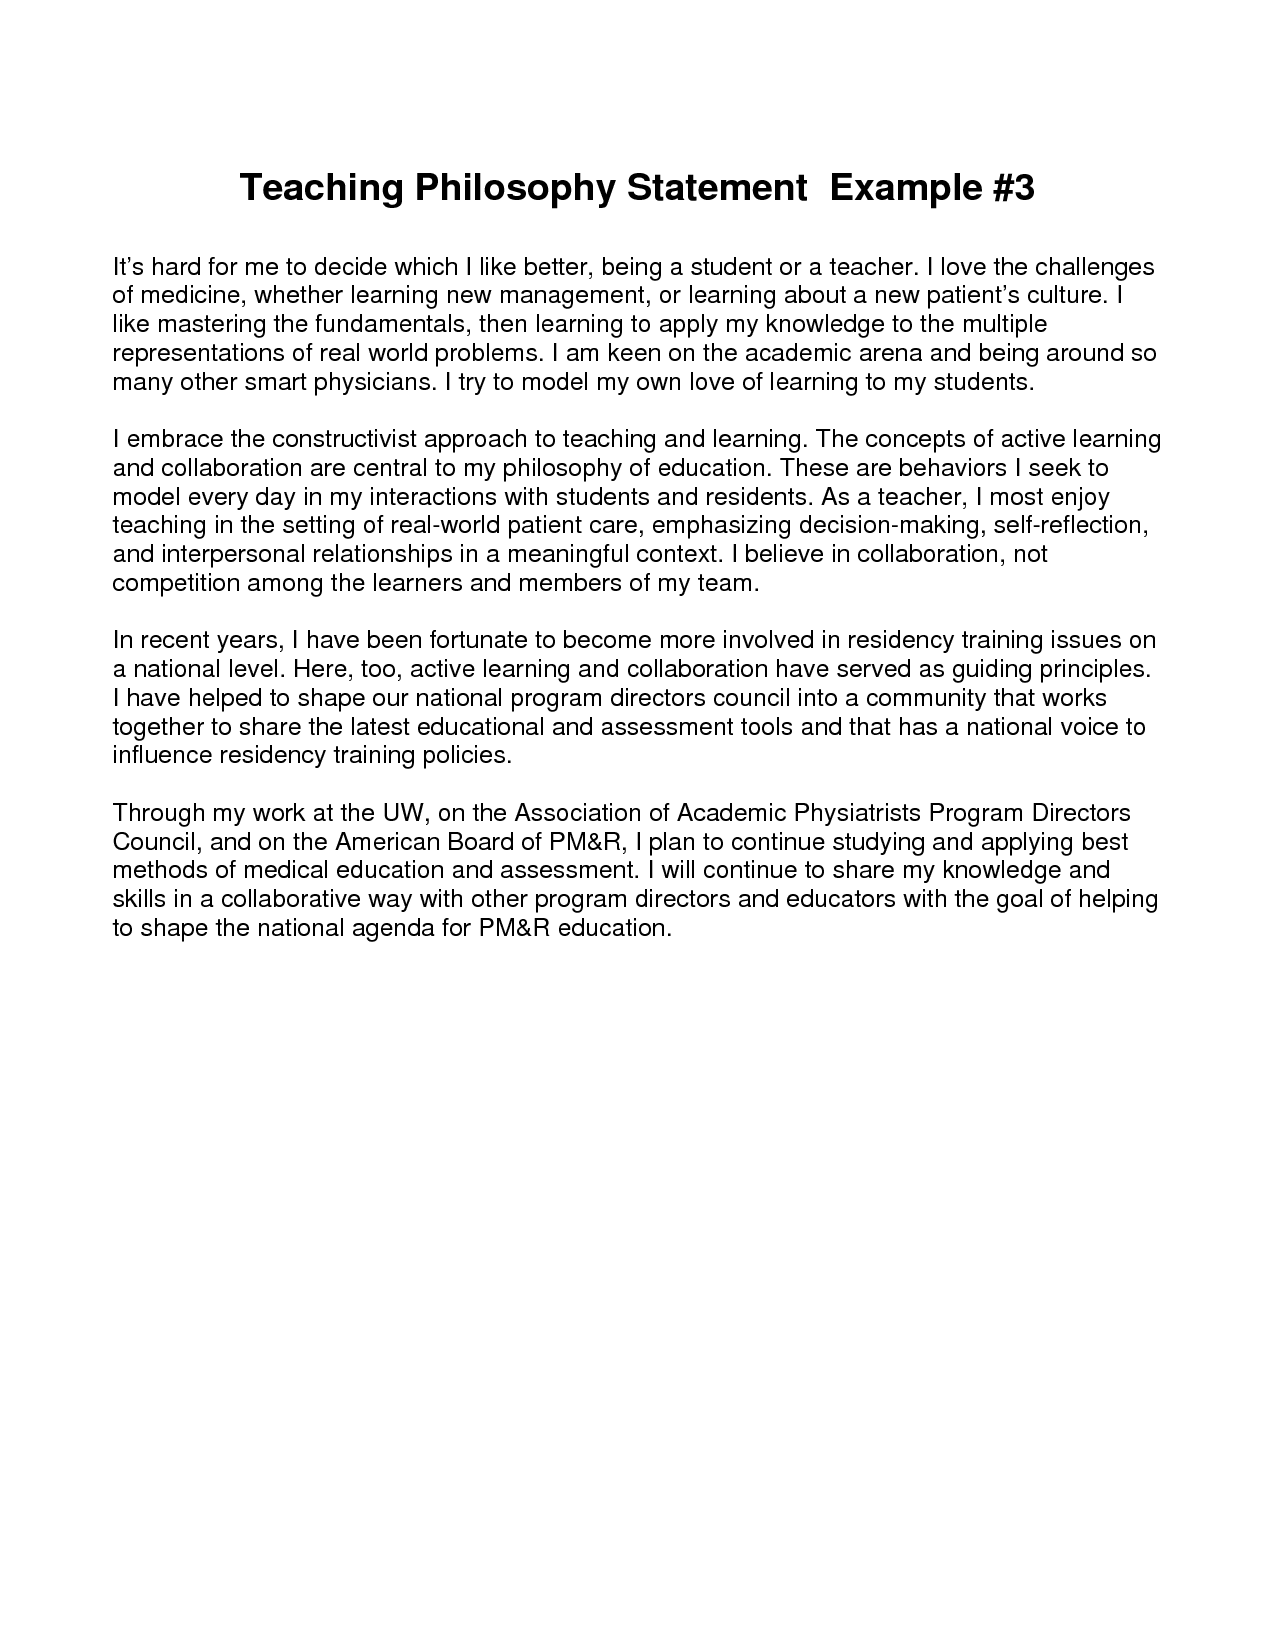 educational philosophy statement samples cda writing a philosophy of teaching statement ucat